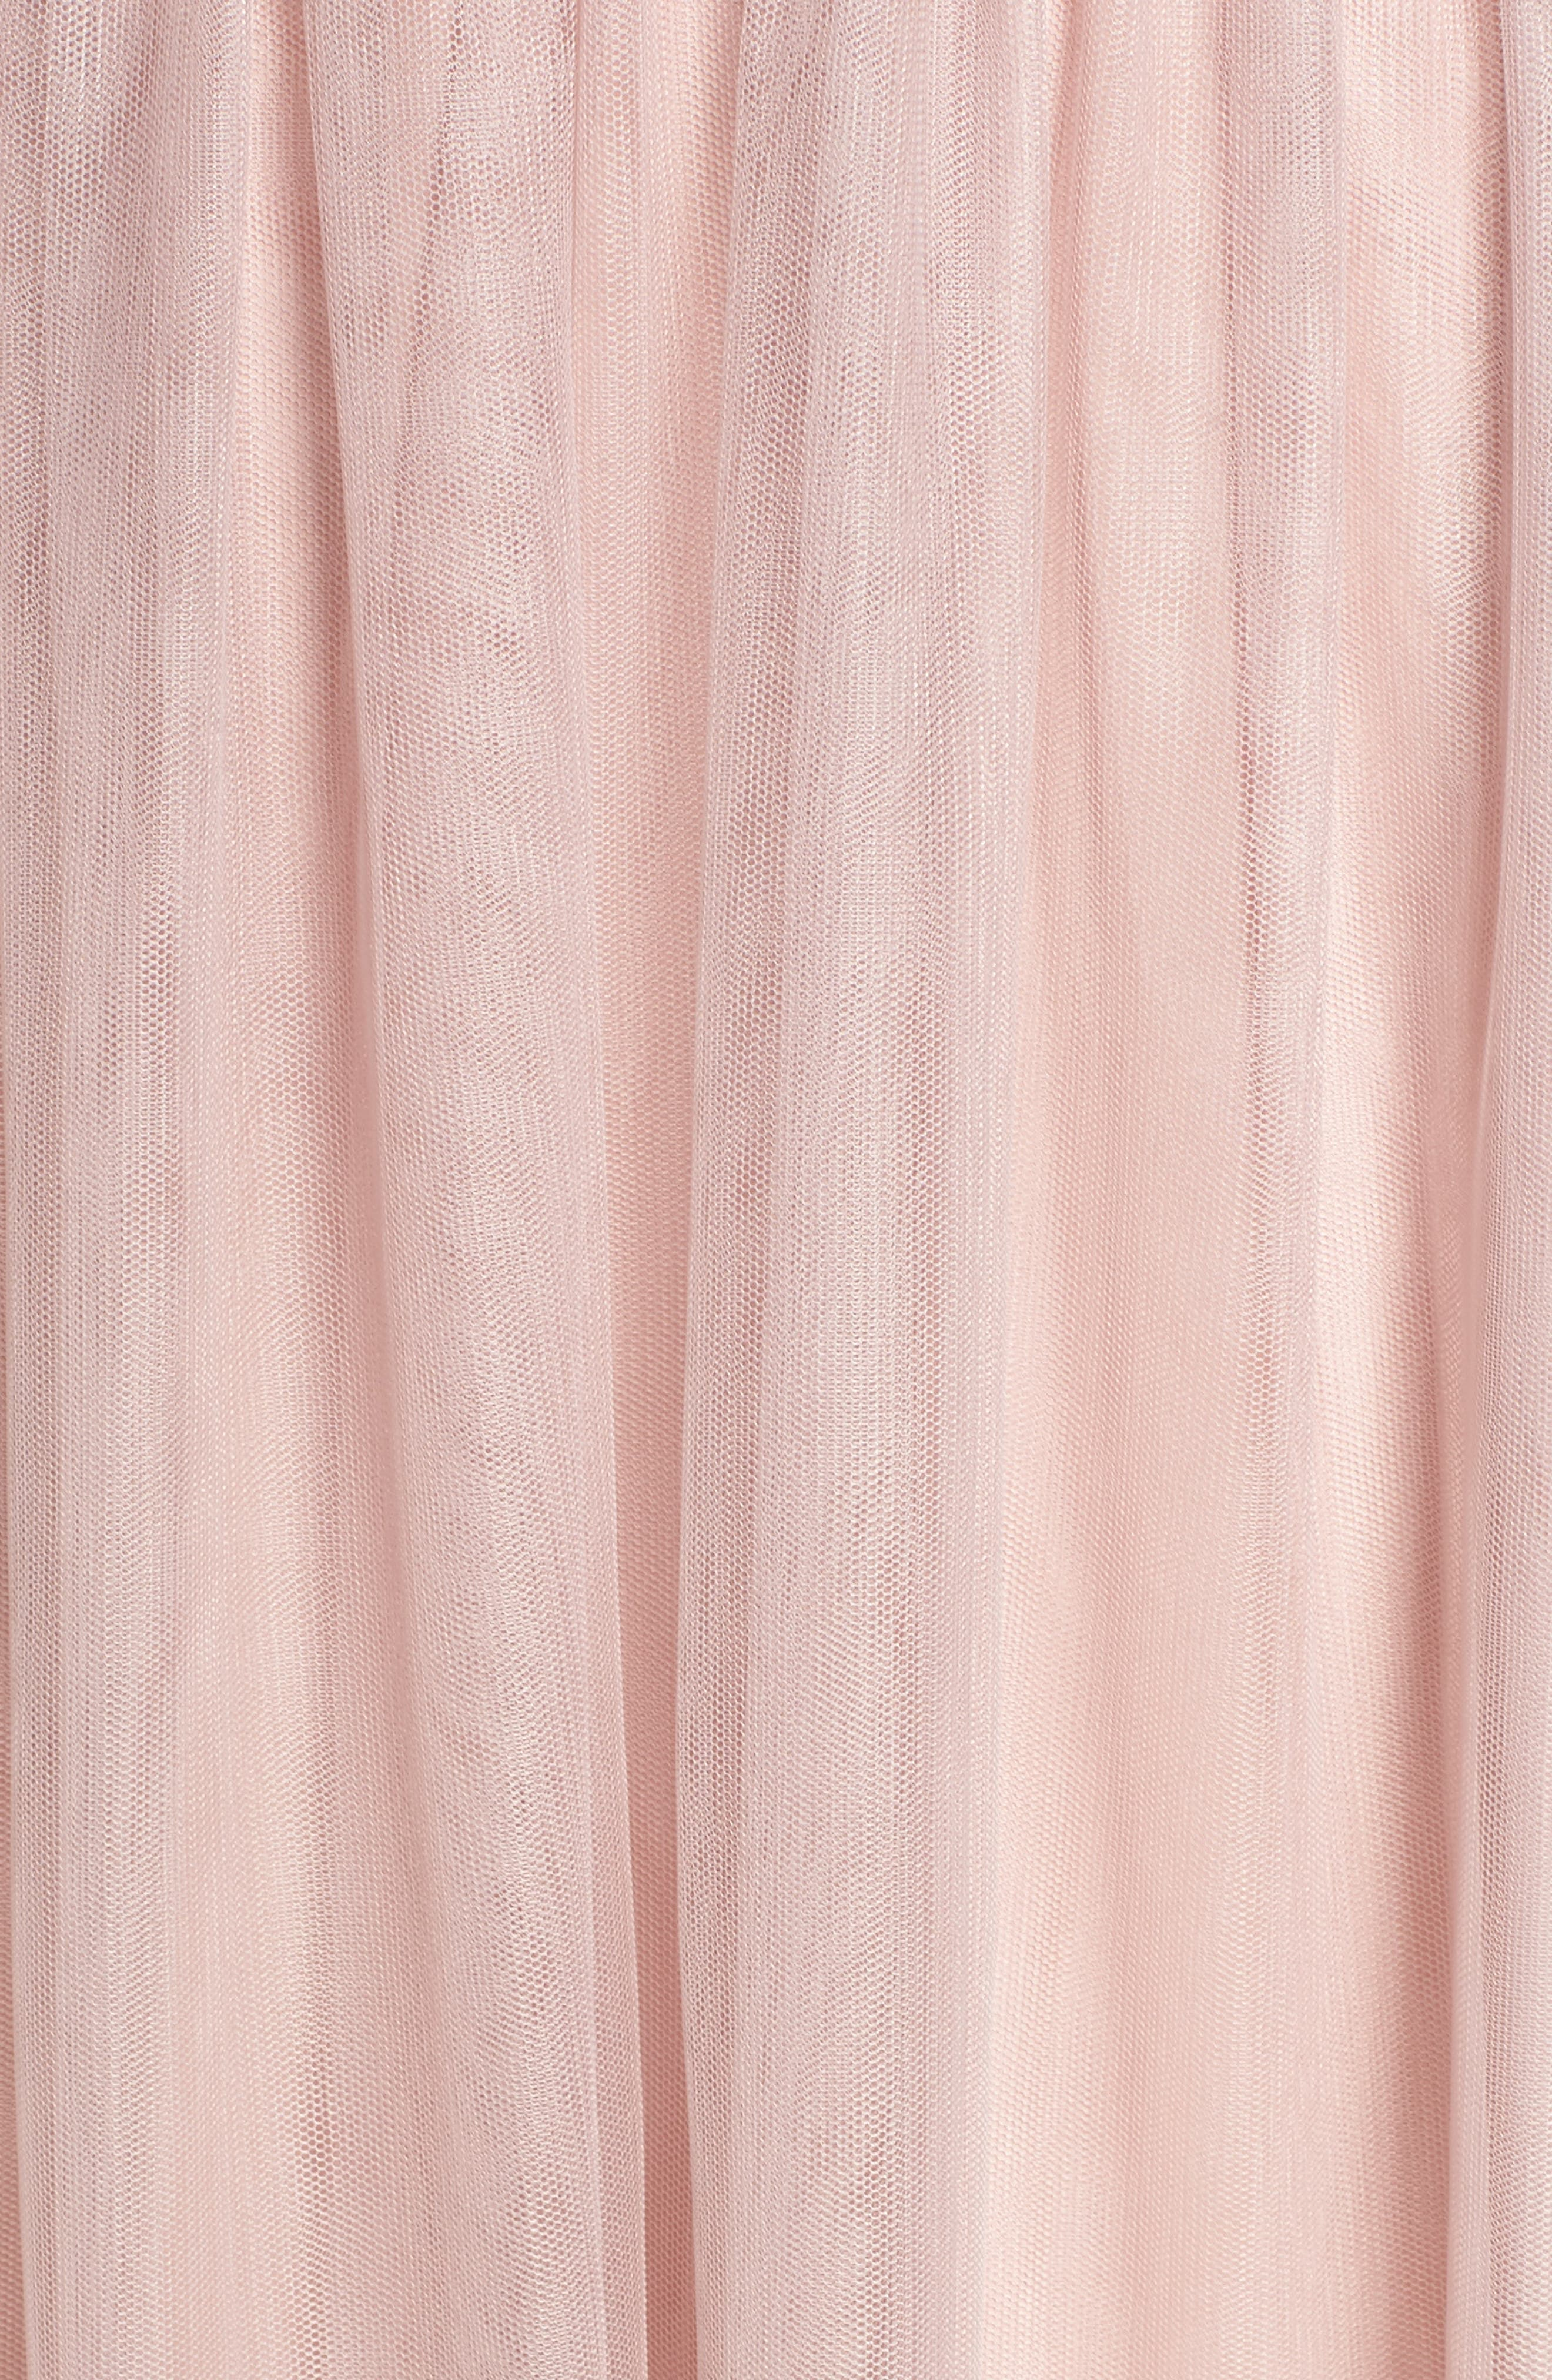 English Net Gown,                             Alternate thumbnail 5, color,                             DUSTY ROSE